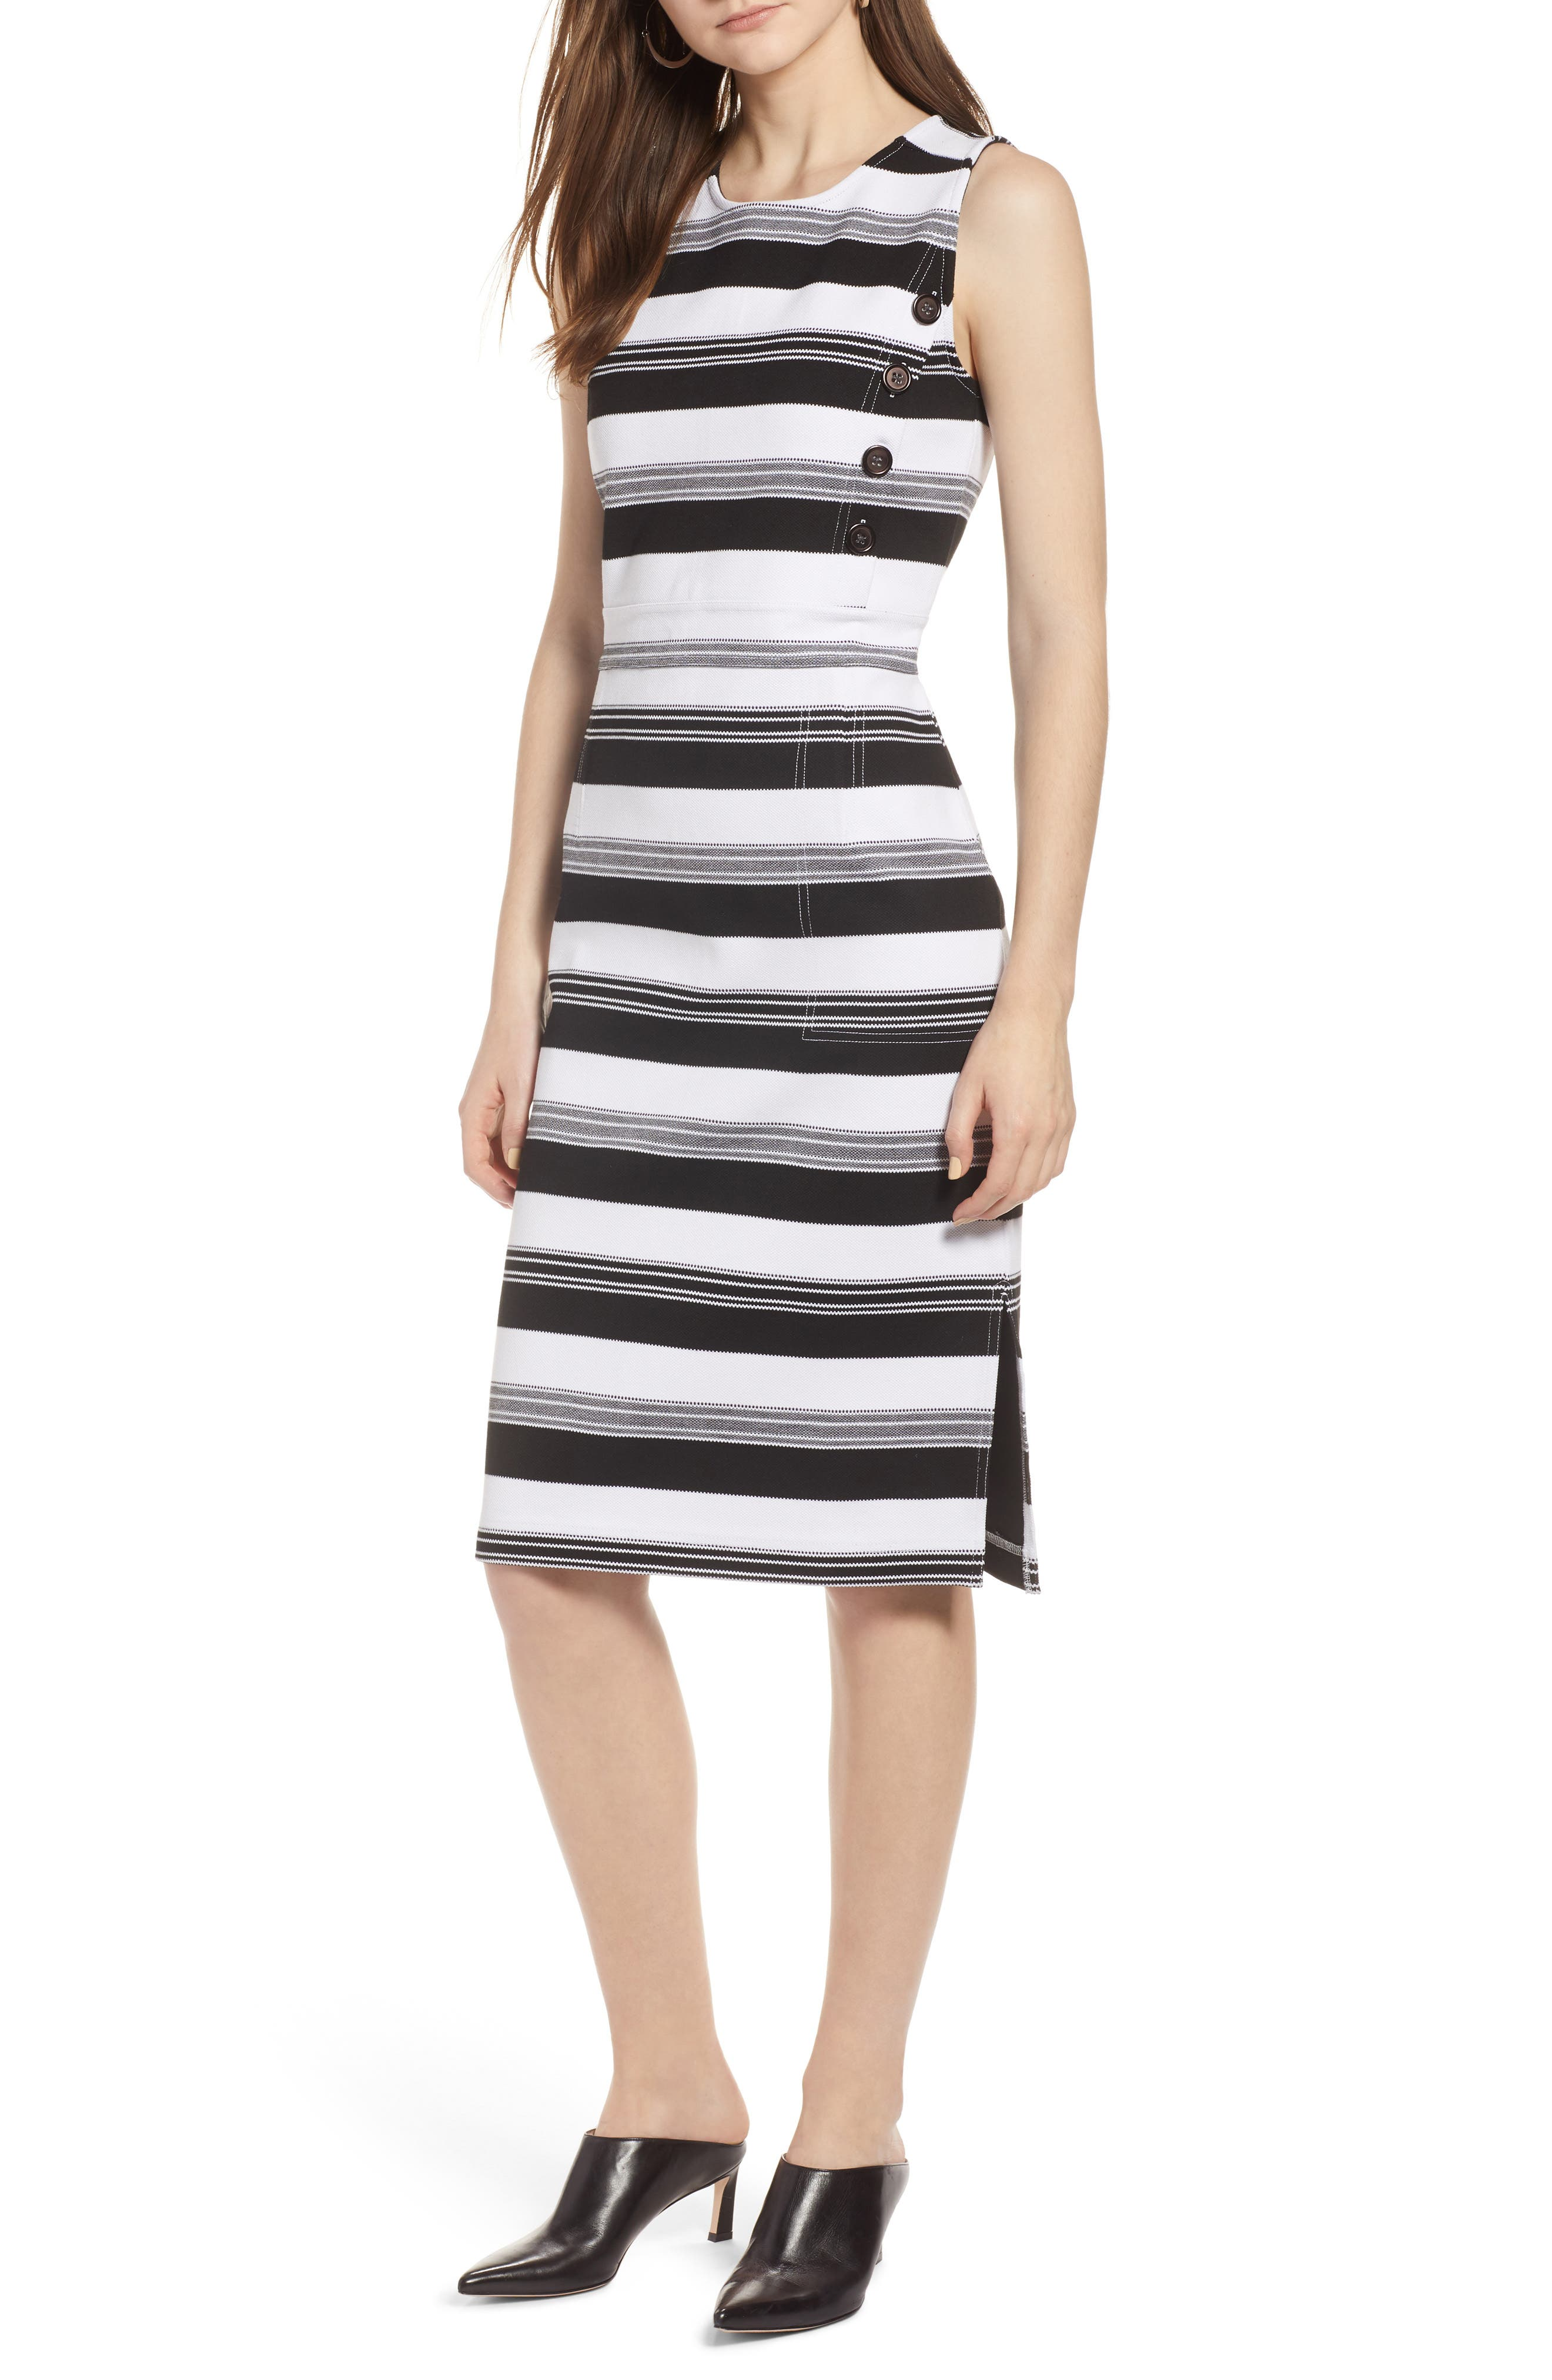 Stripe Knit Dress,                             Main thumbnail 1, color,                             Black- Ivory Stripe